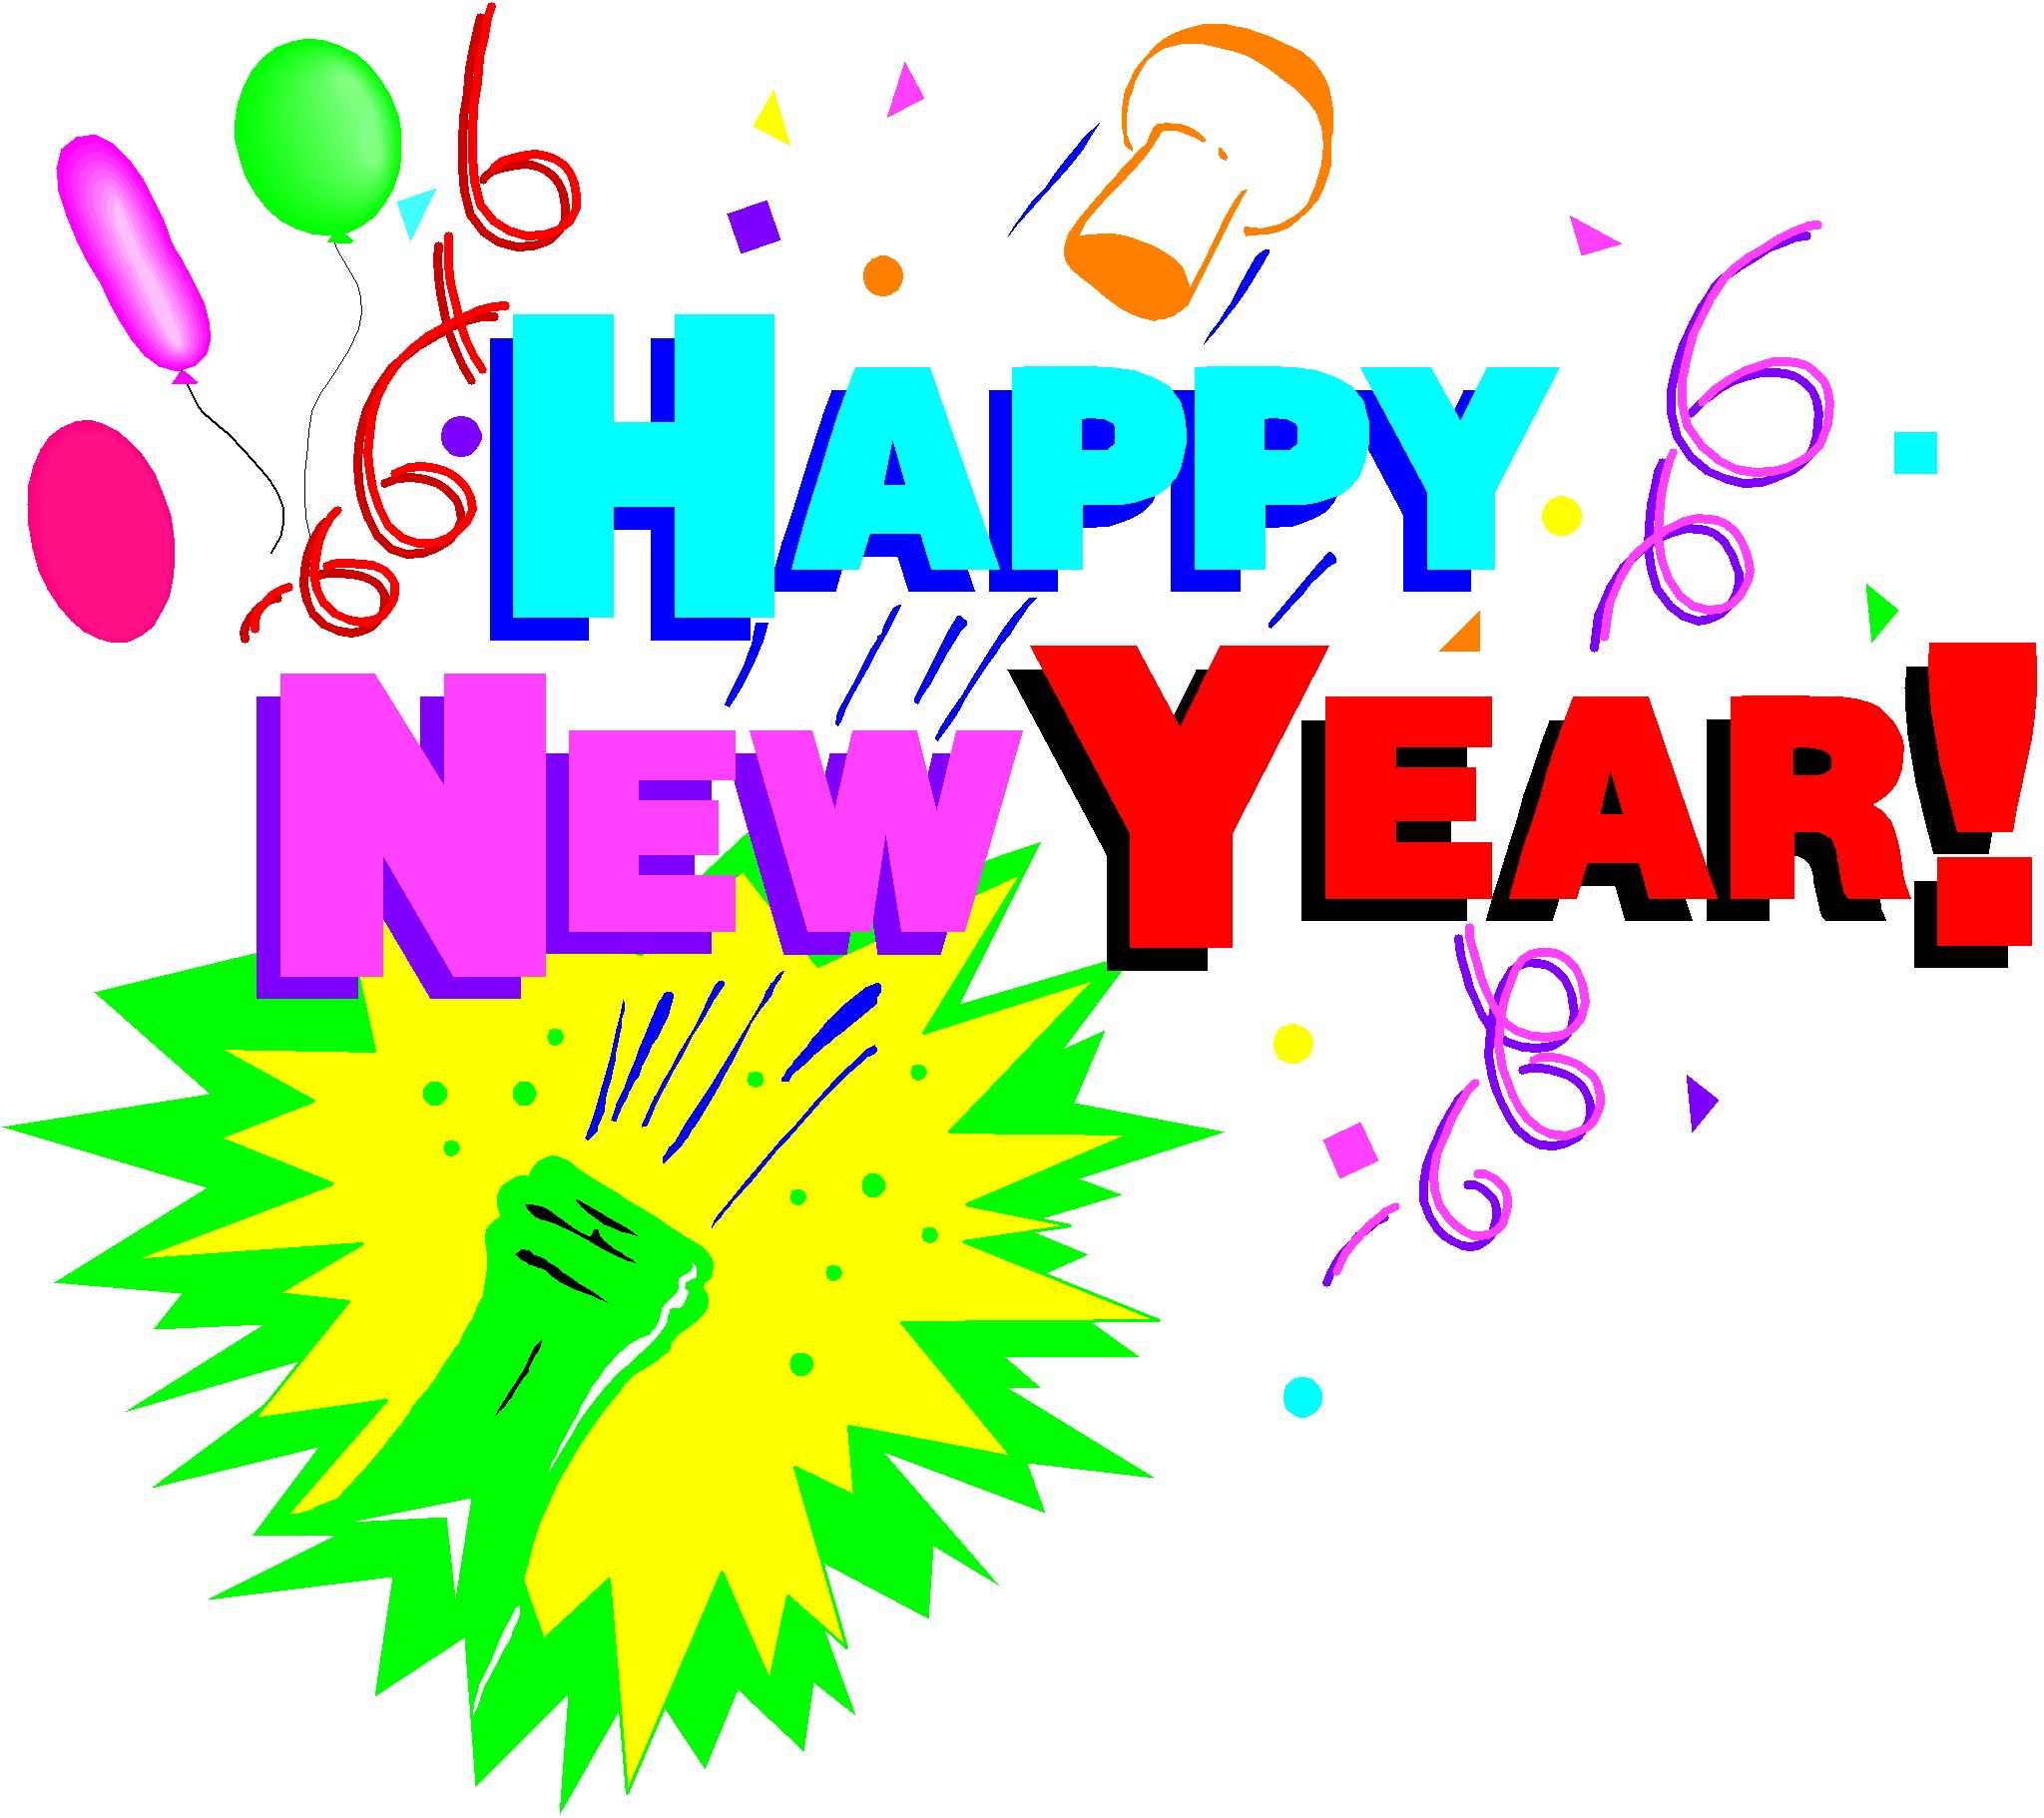 Free clipart images new years eve